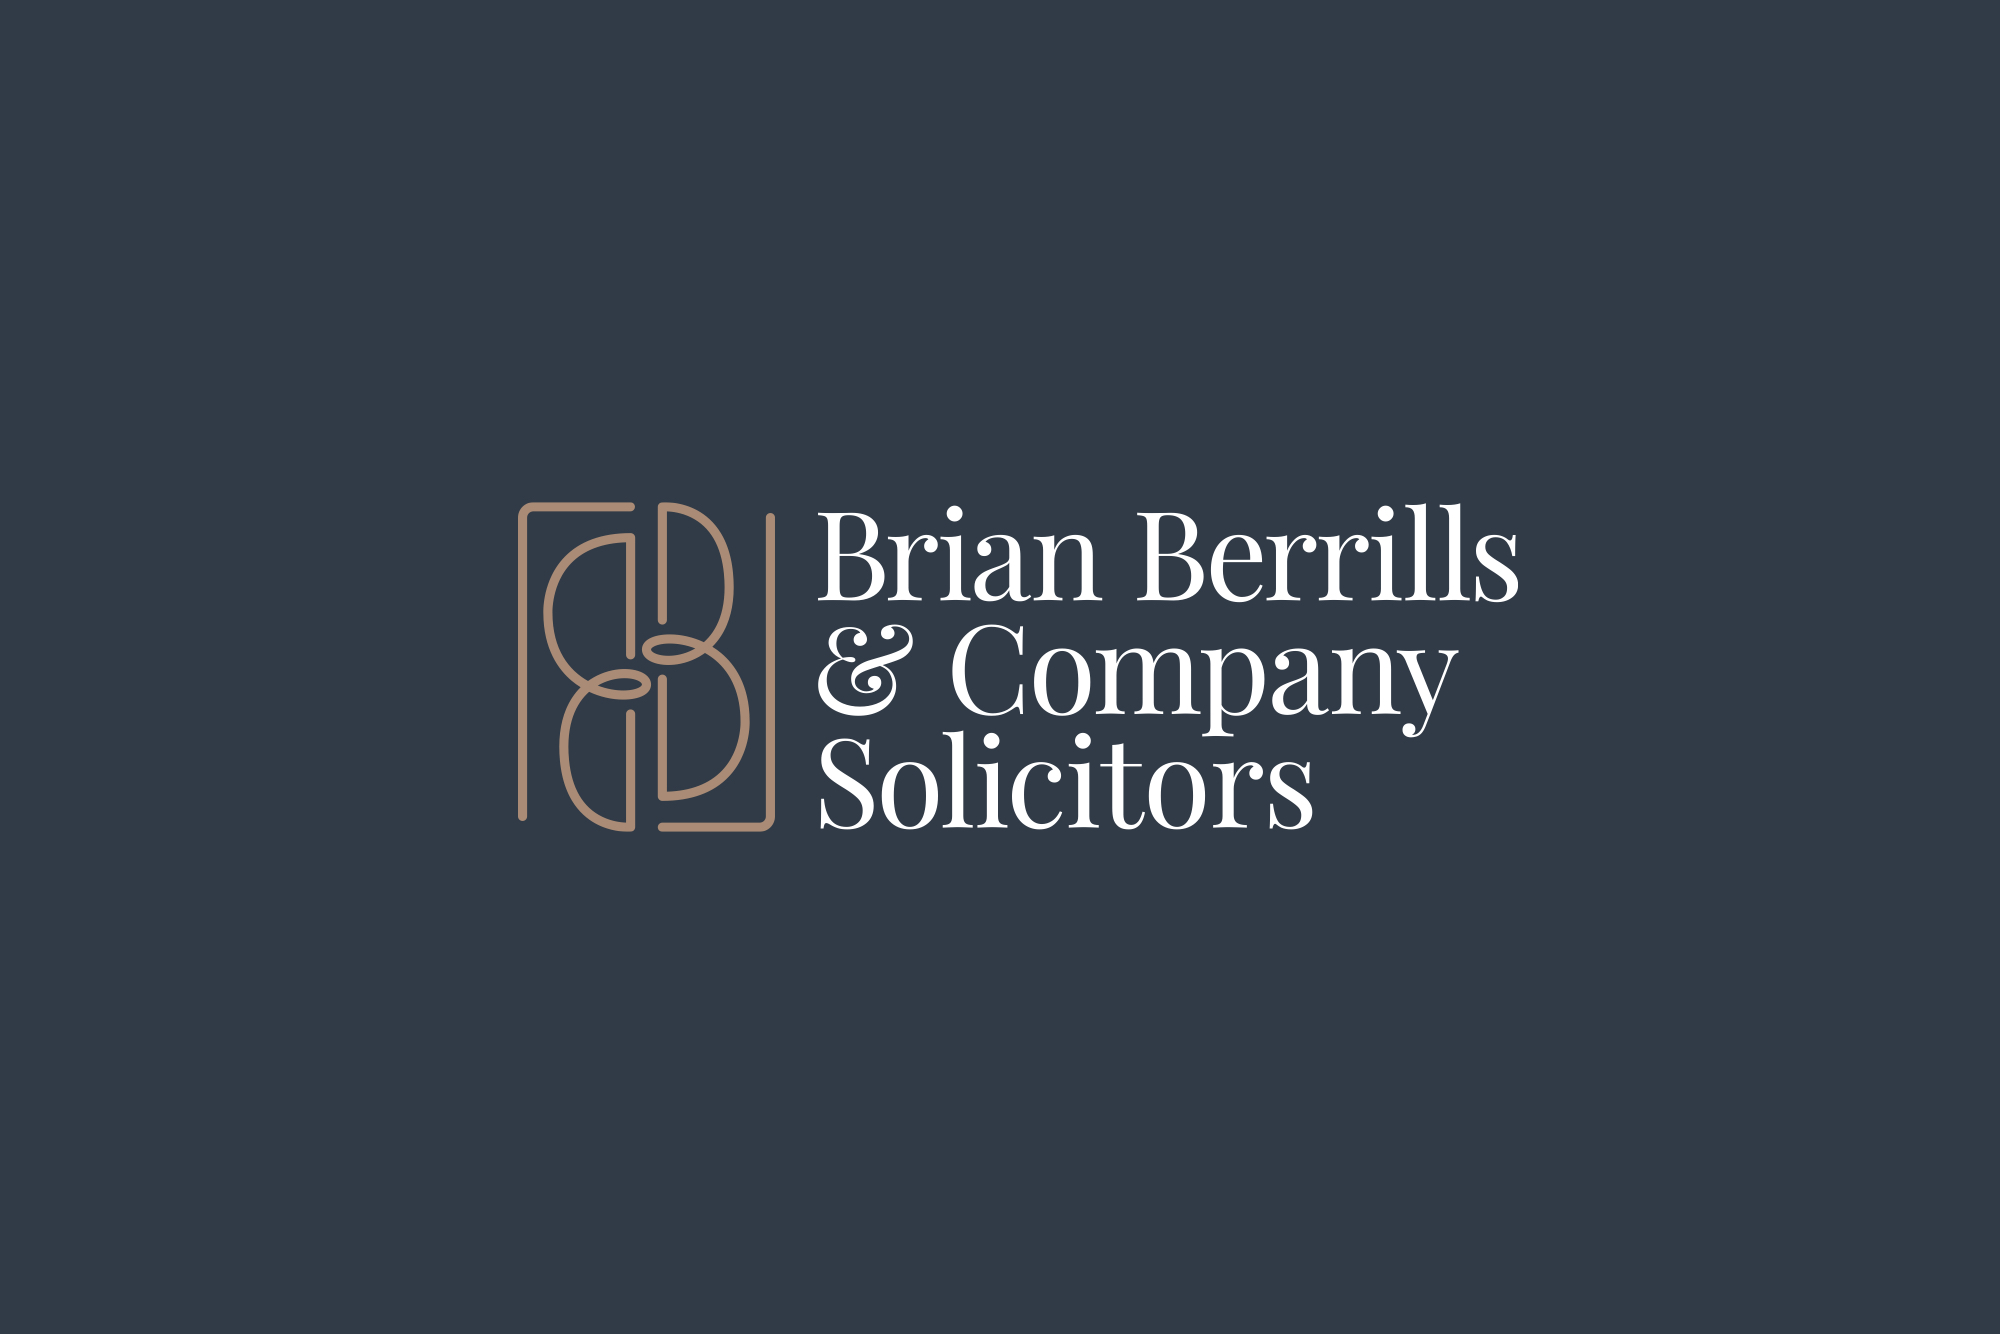 Cover image: Brian Berrills Solicitors